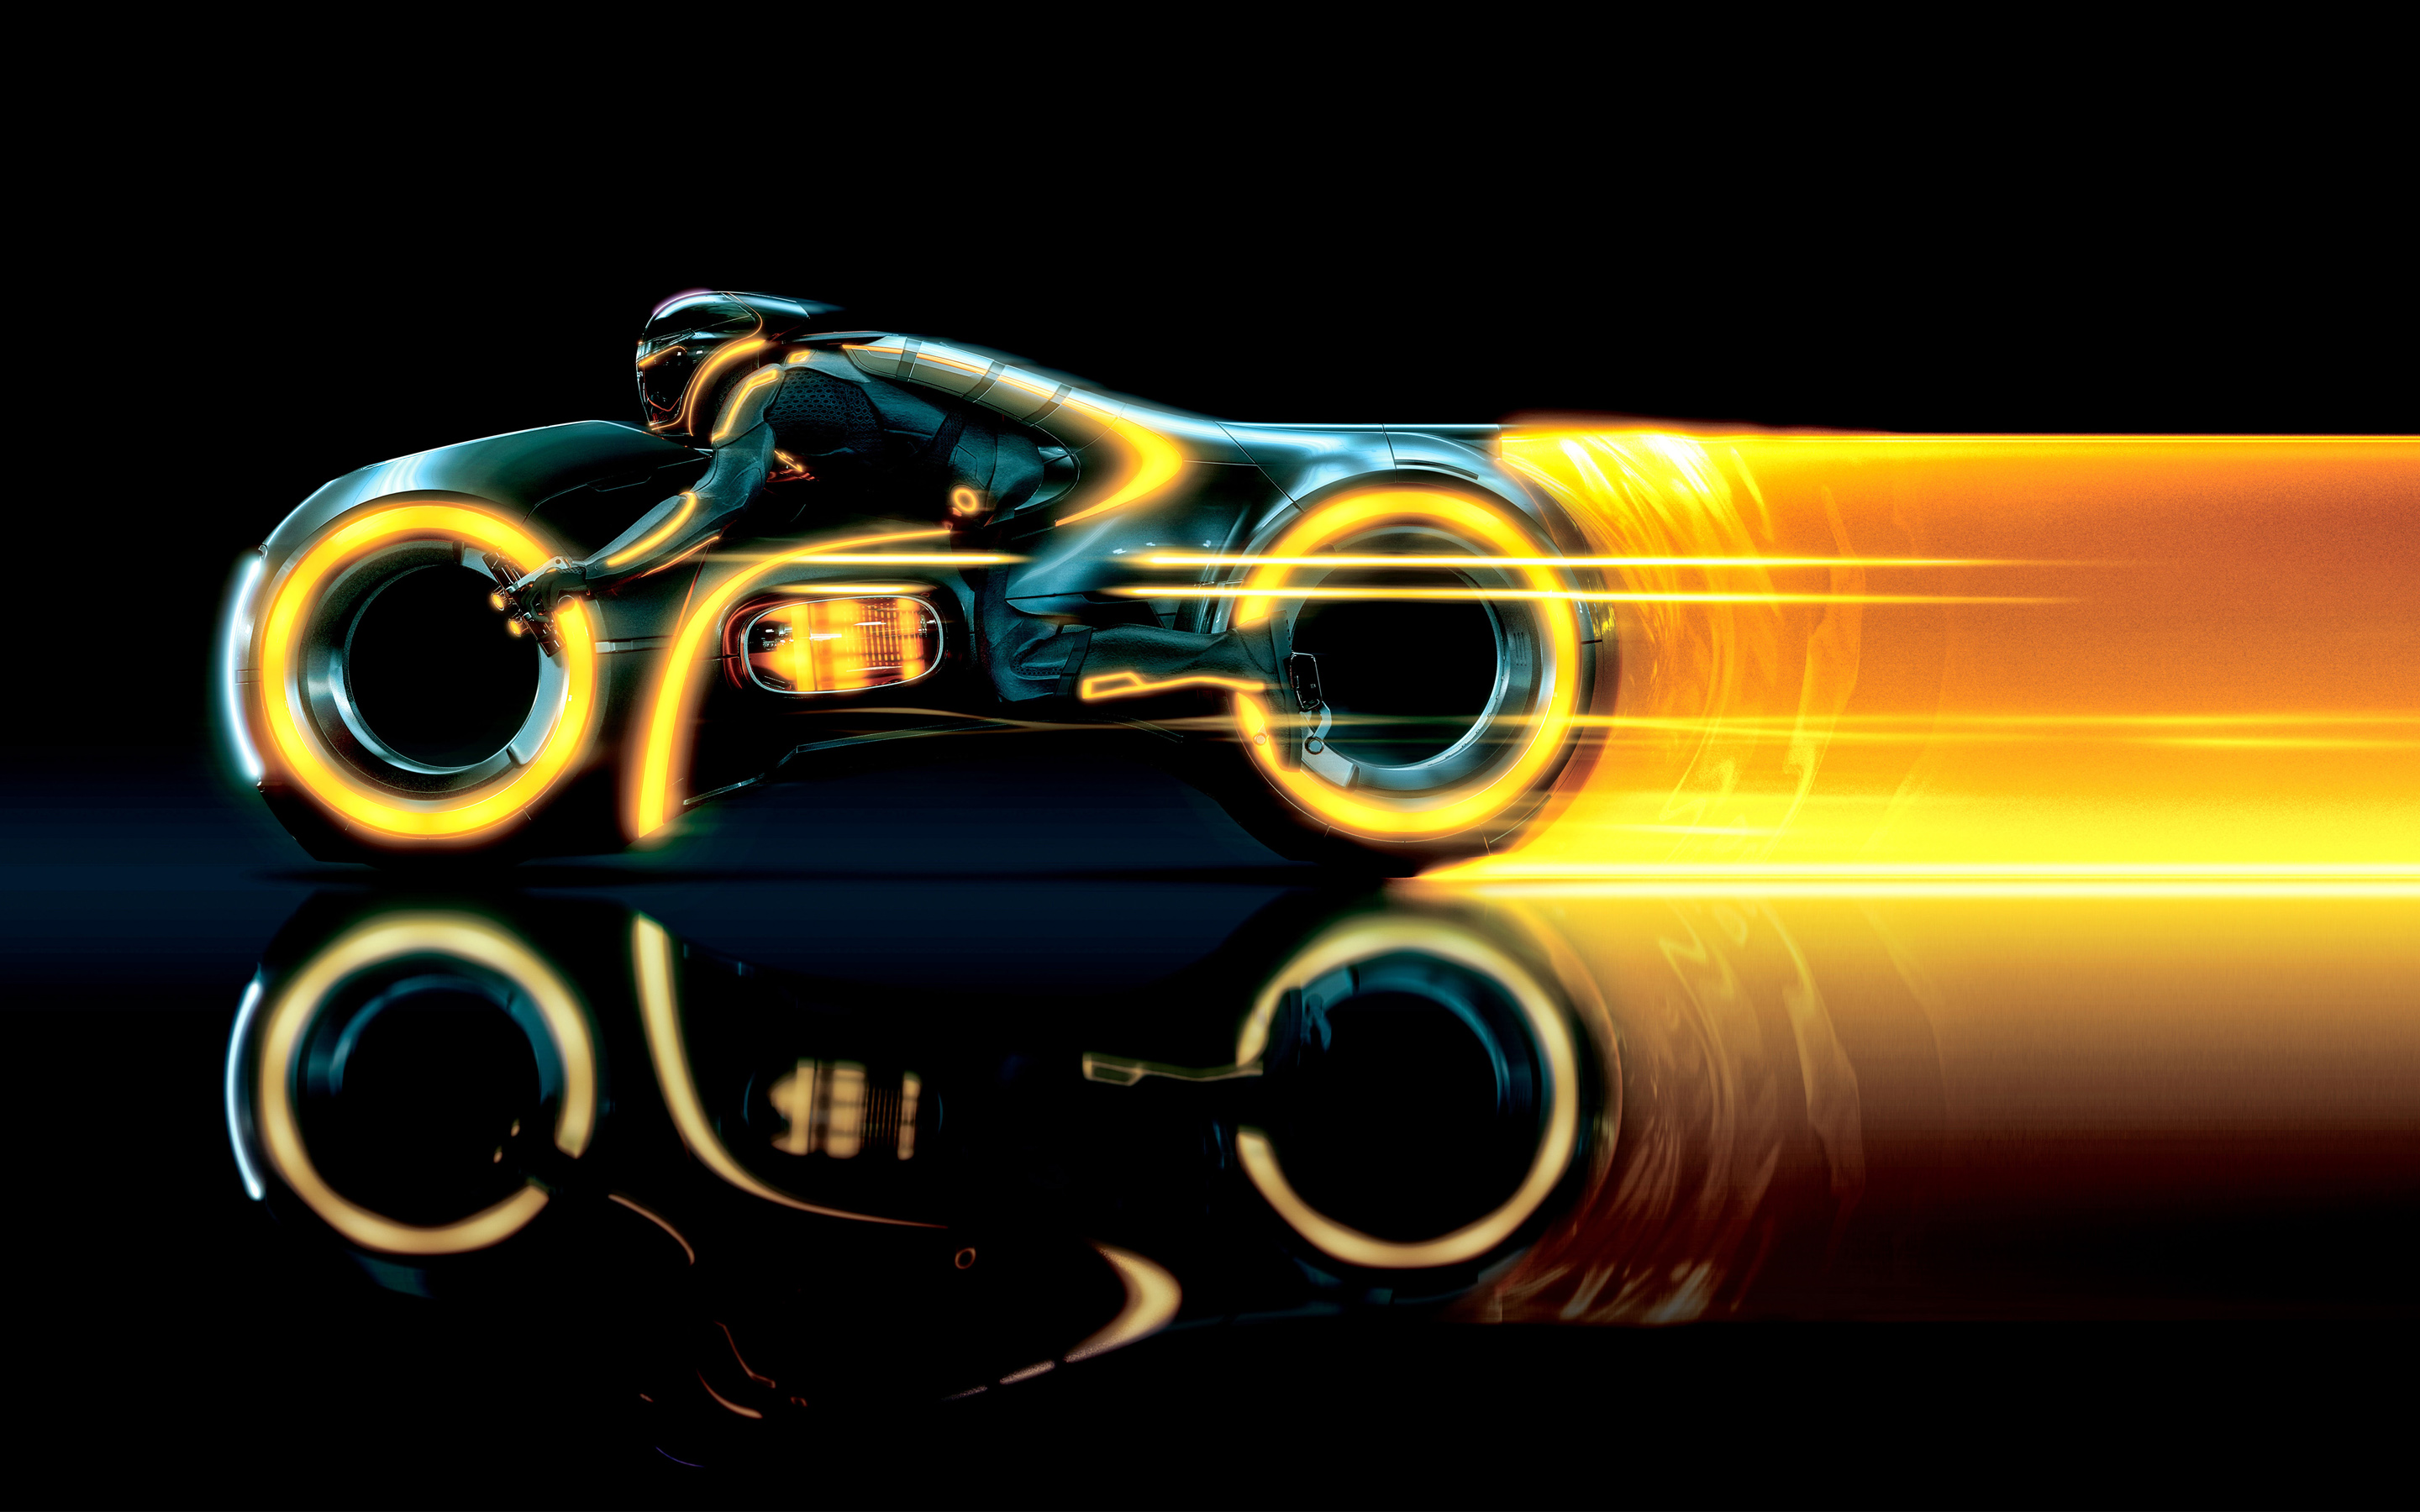 Tron Legacy Lightcycle 433.74 Kb